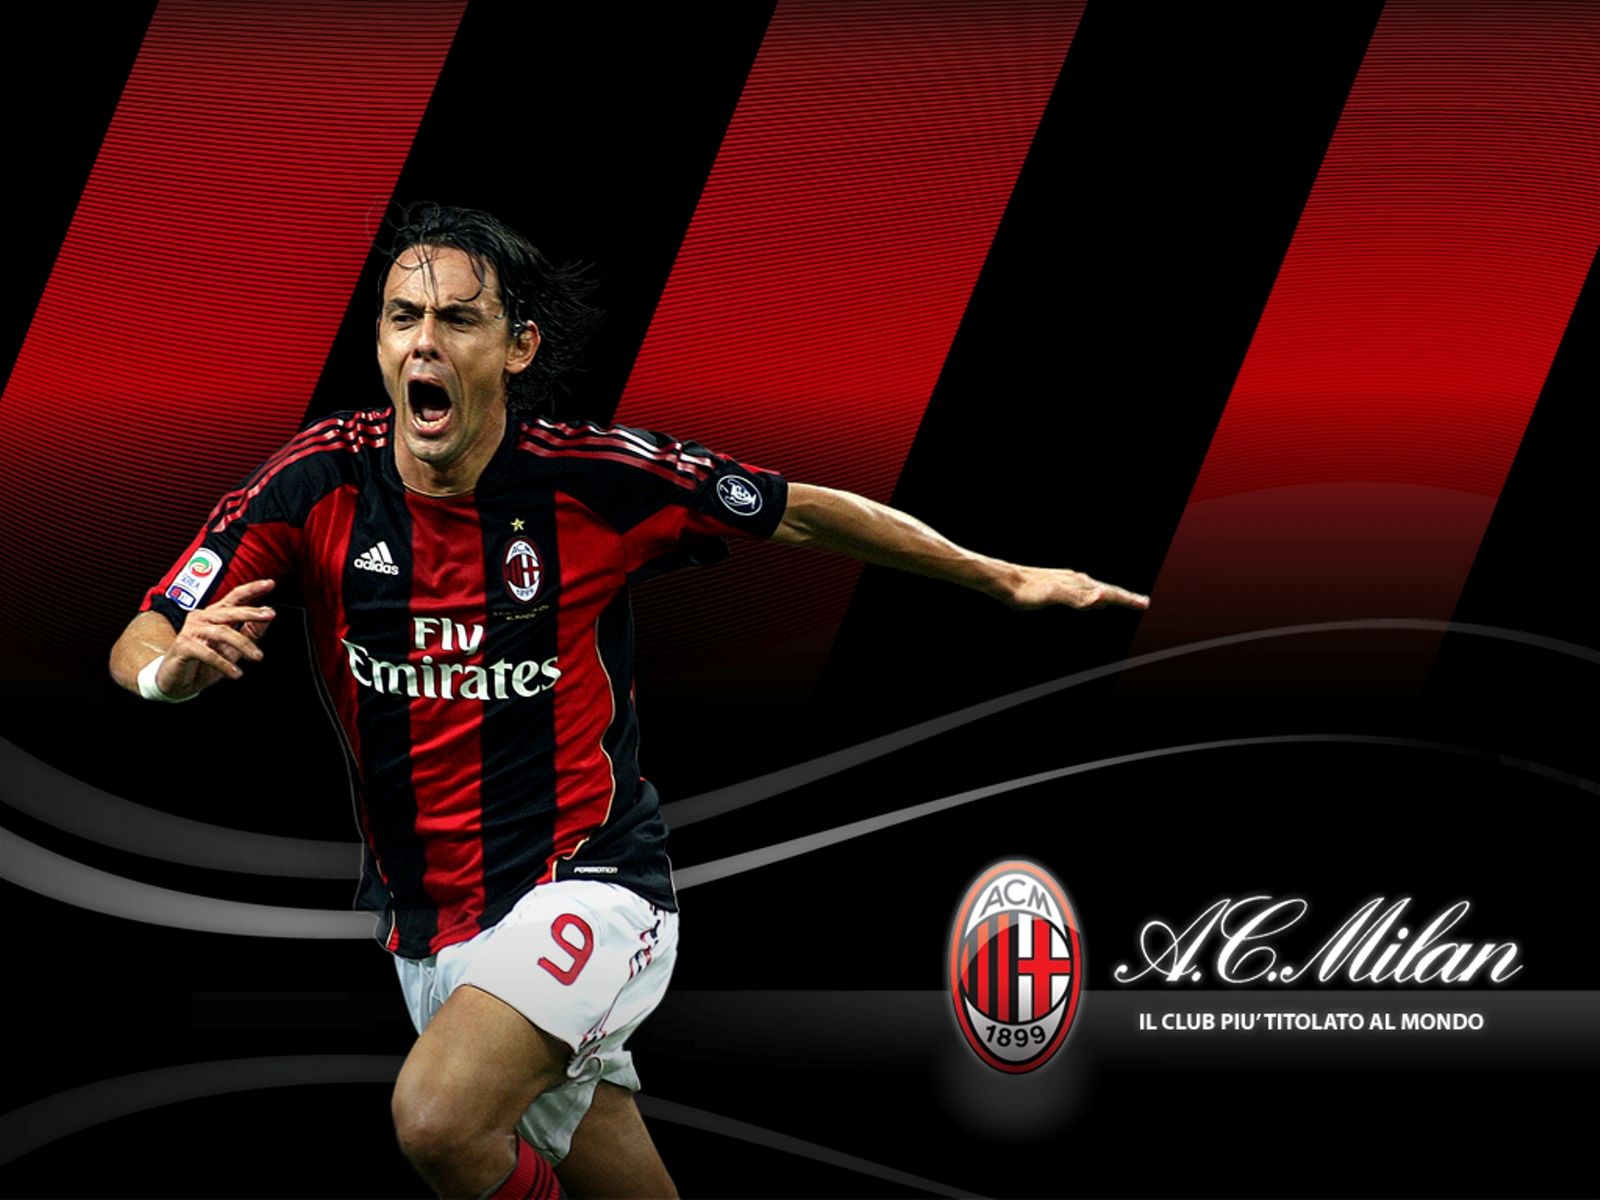 Filippo Inzaghi Ac Milan HD Wallpaper   HD Wallpaper HD Wallpaper 1600x1200